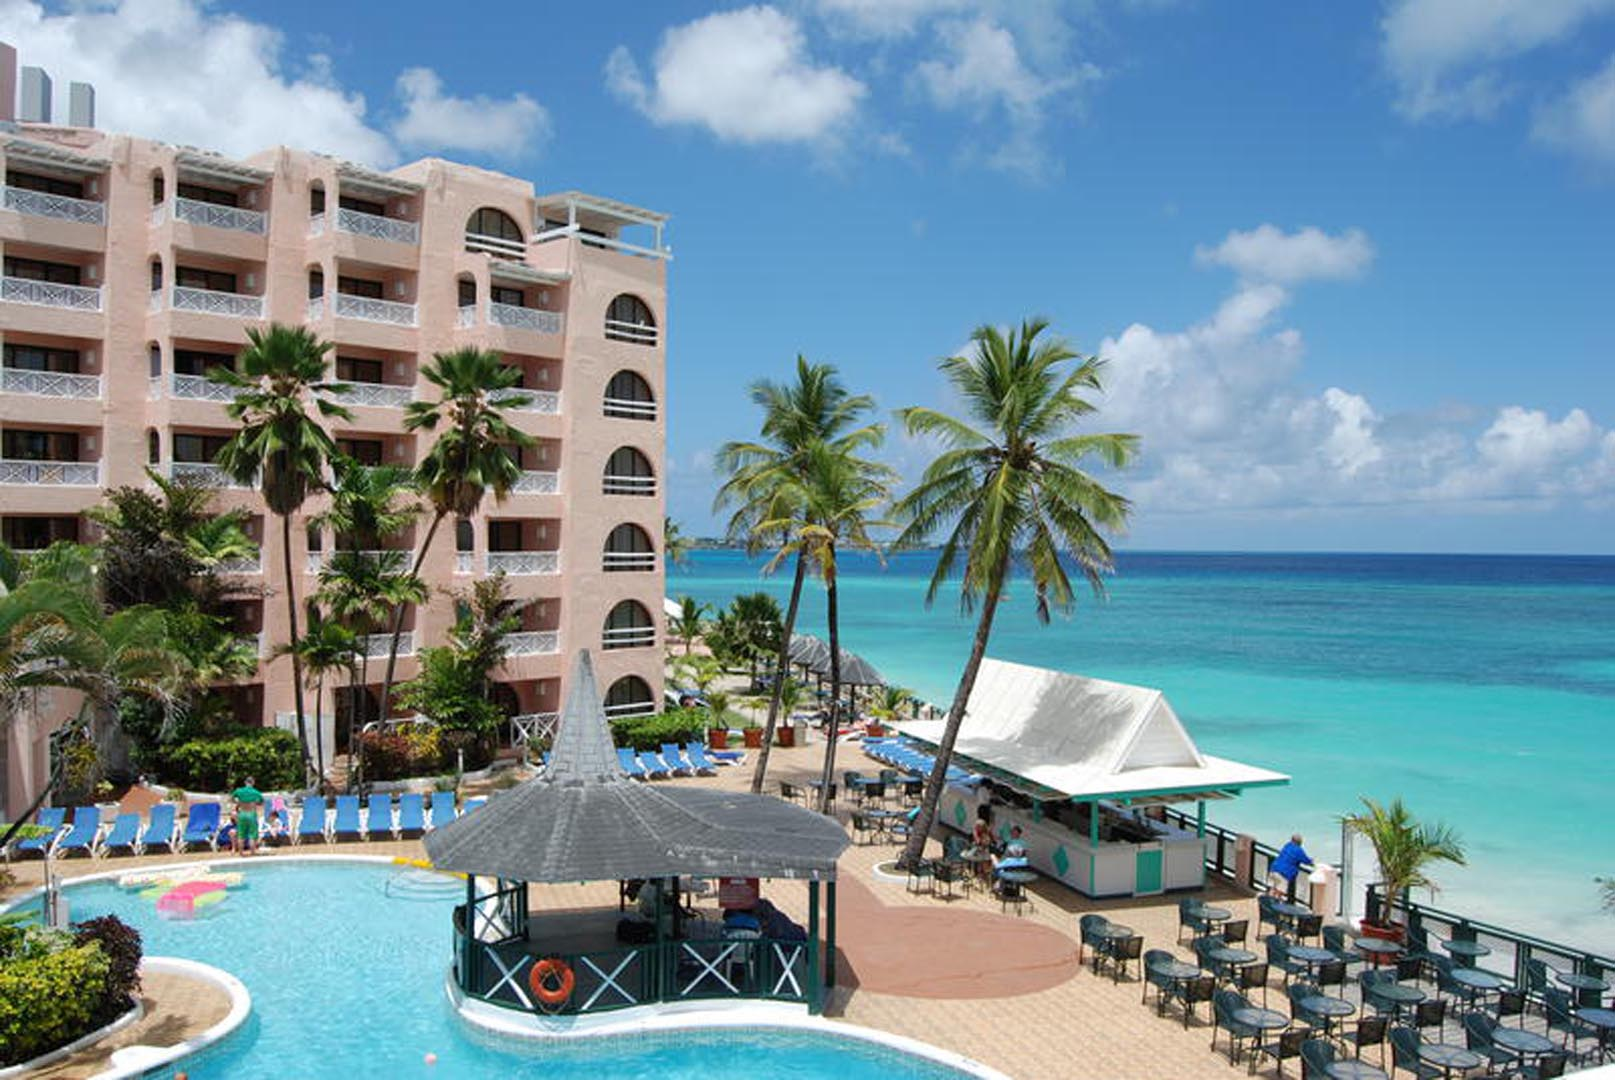 Barbados Beach Club in Hotels Caribbean Barbados